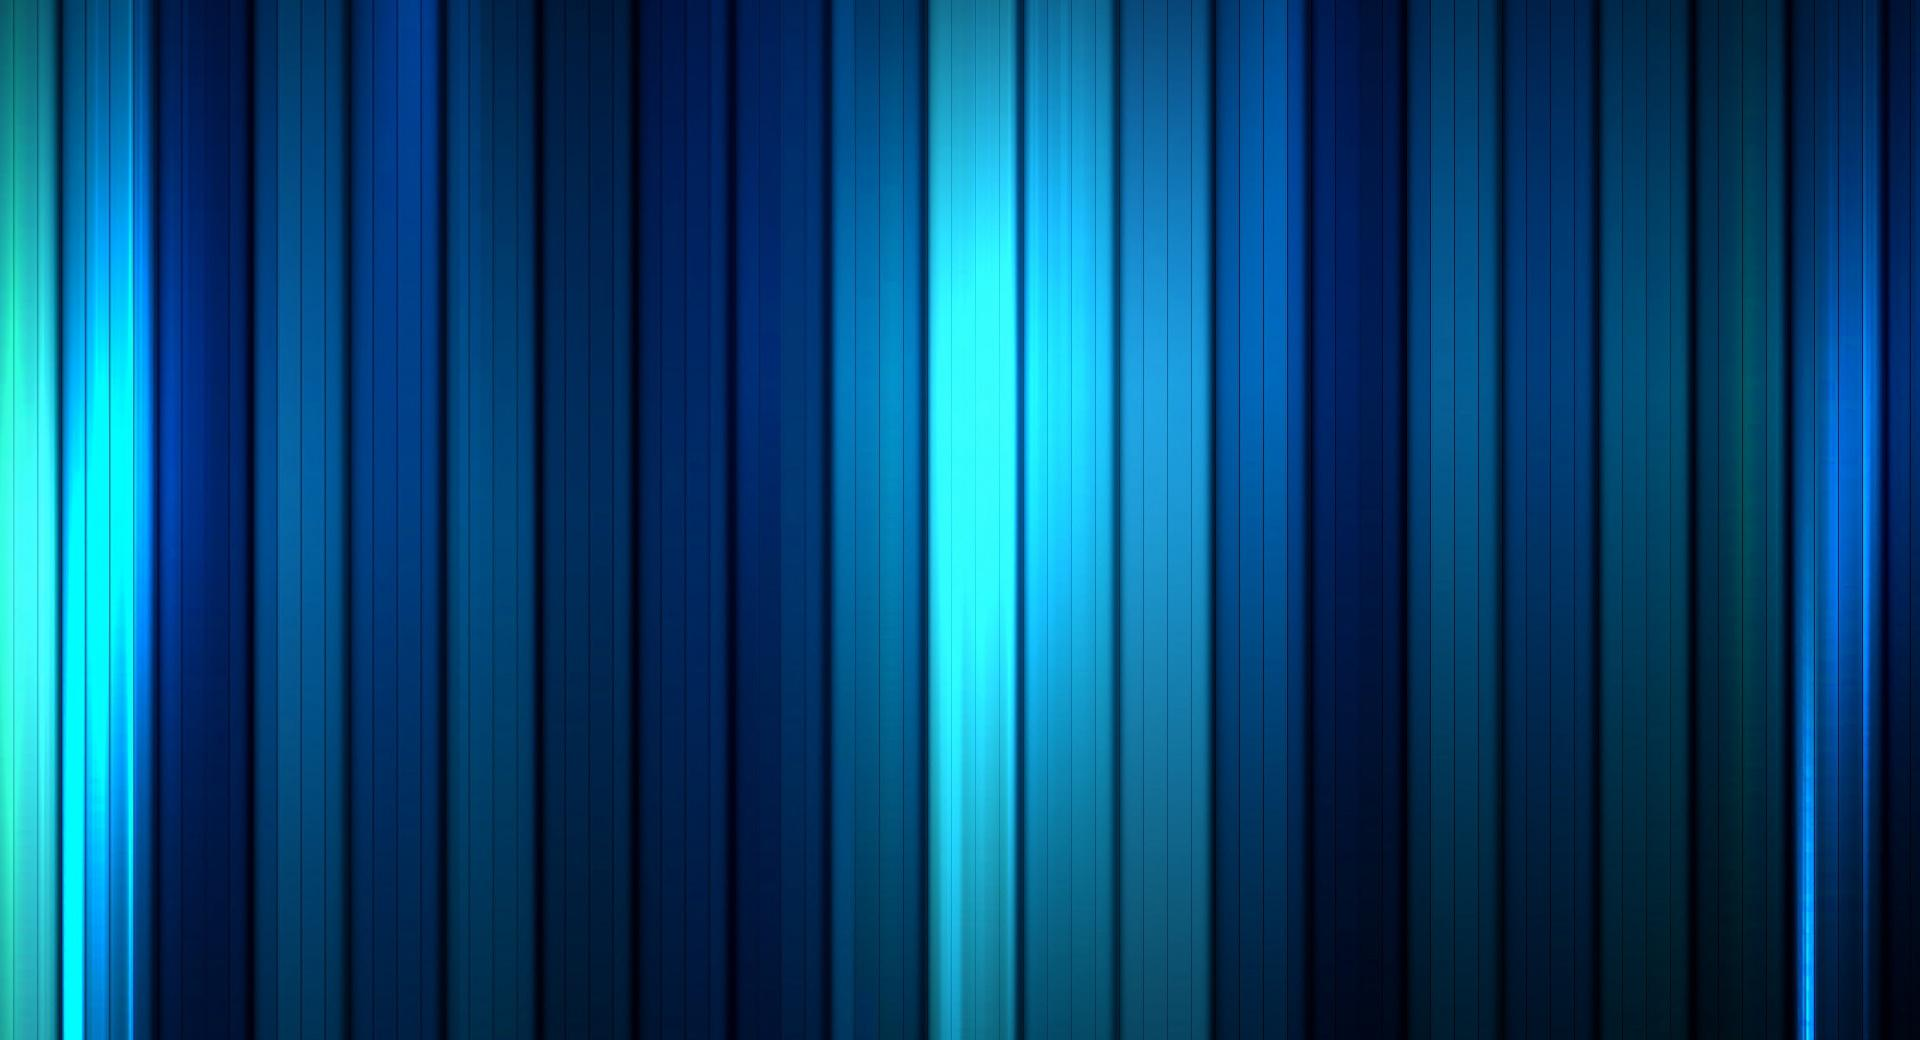 Blue Shades at 1152 x 864 size wallpapers HD quality